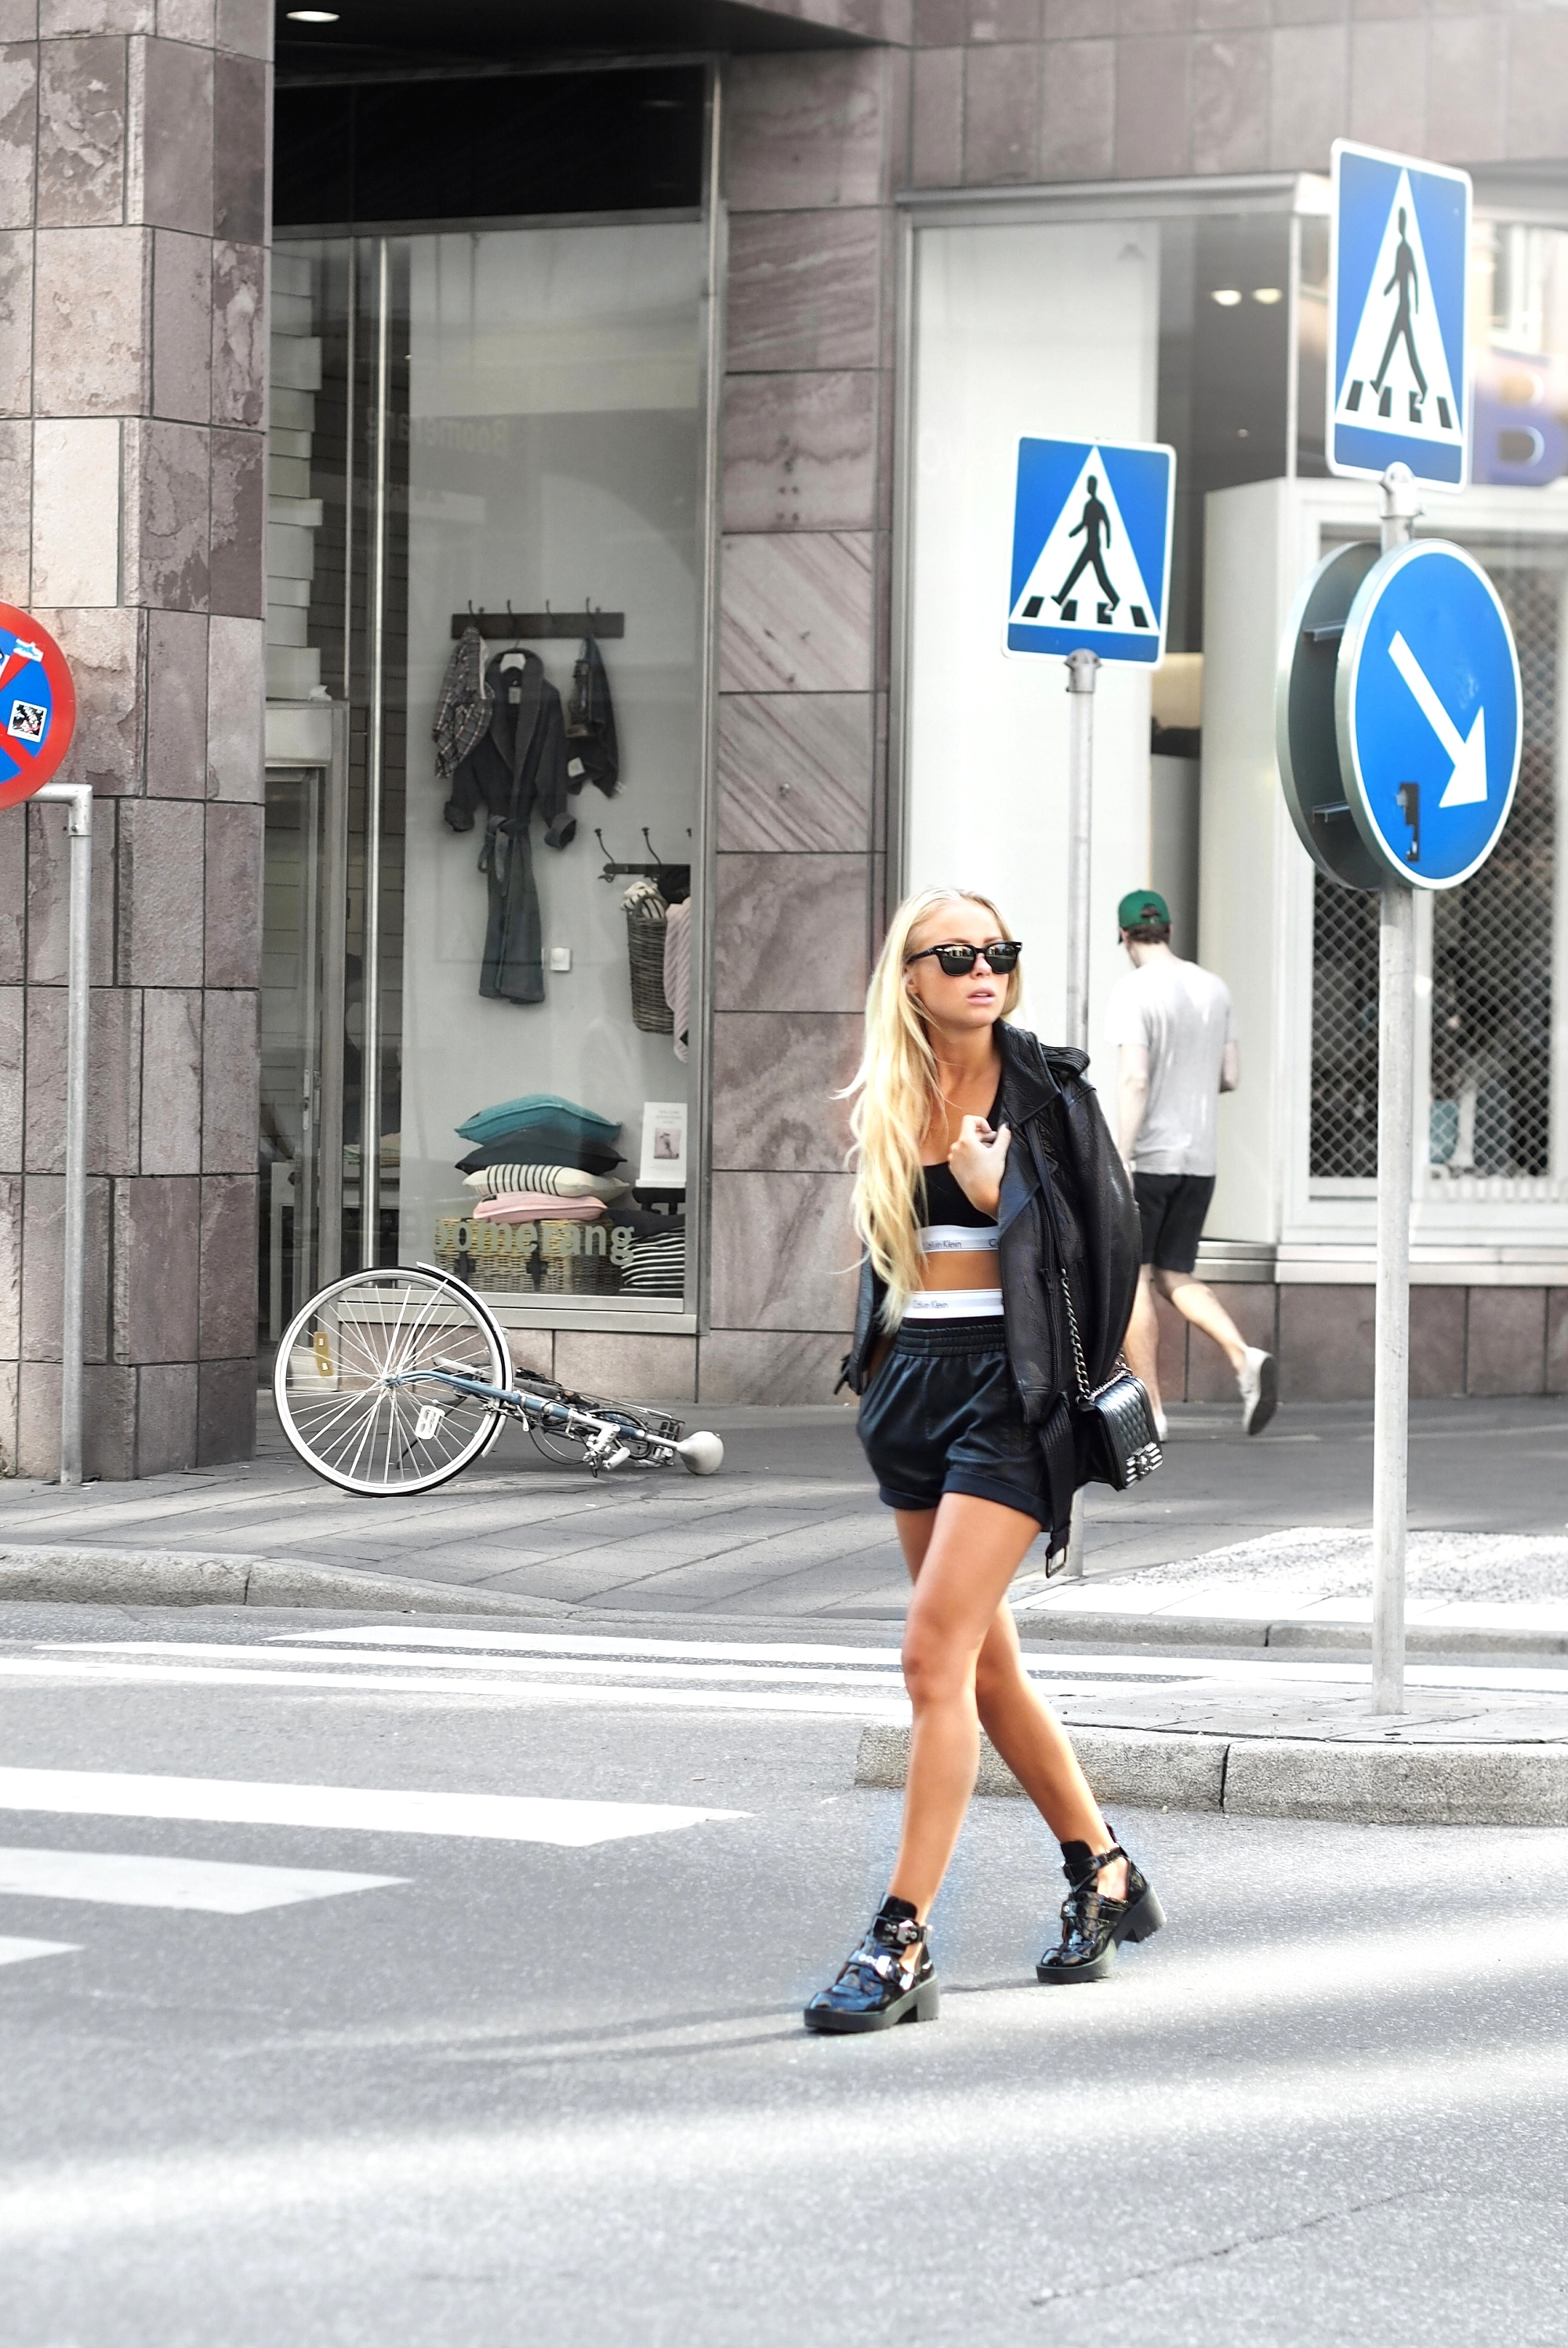 Victoria Tornegren is wearing black shorts from NLY, jacket from FWSS, bra and boxers from Calvin Klein, shoes from Jeffrey Campbell and sunglasses from RayBan